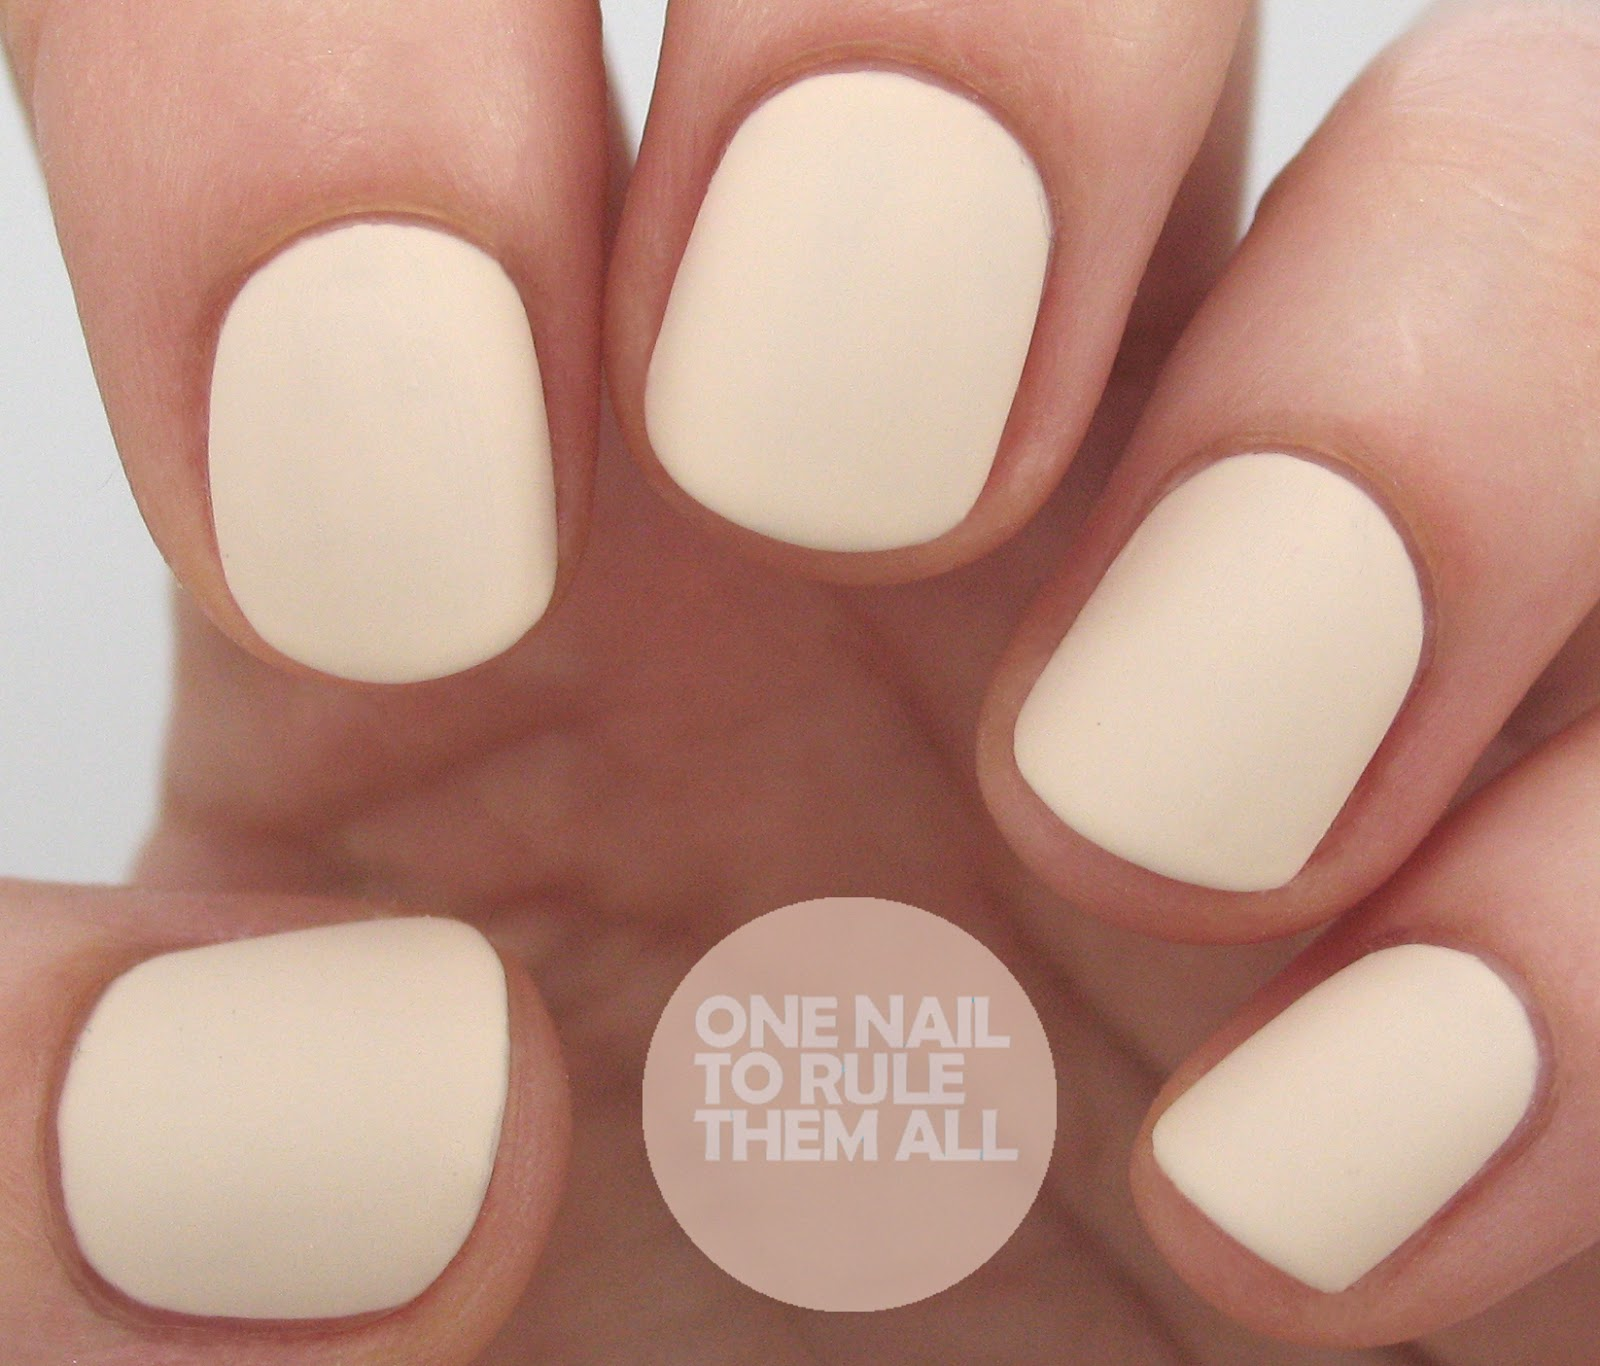 One Nail To Rule Them All Barry M Nail Art Pens Review: One Nail To Rule Them All: Review Week, Day 3: Jacava